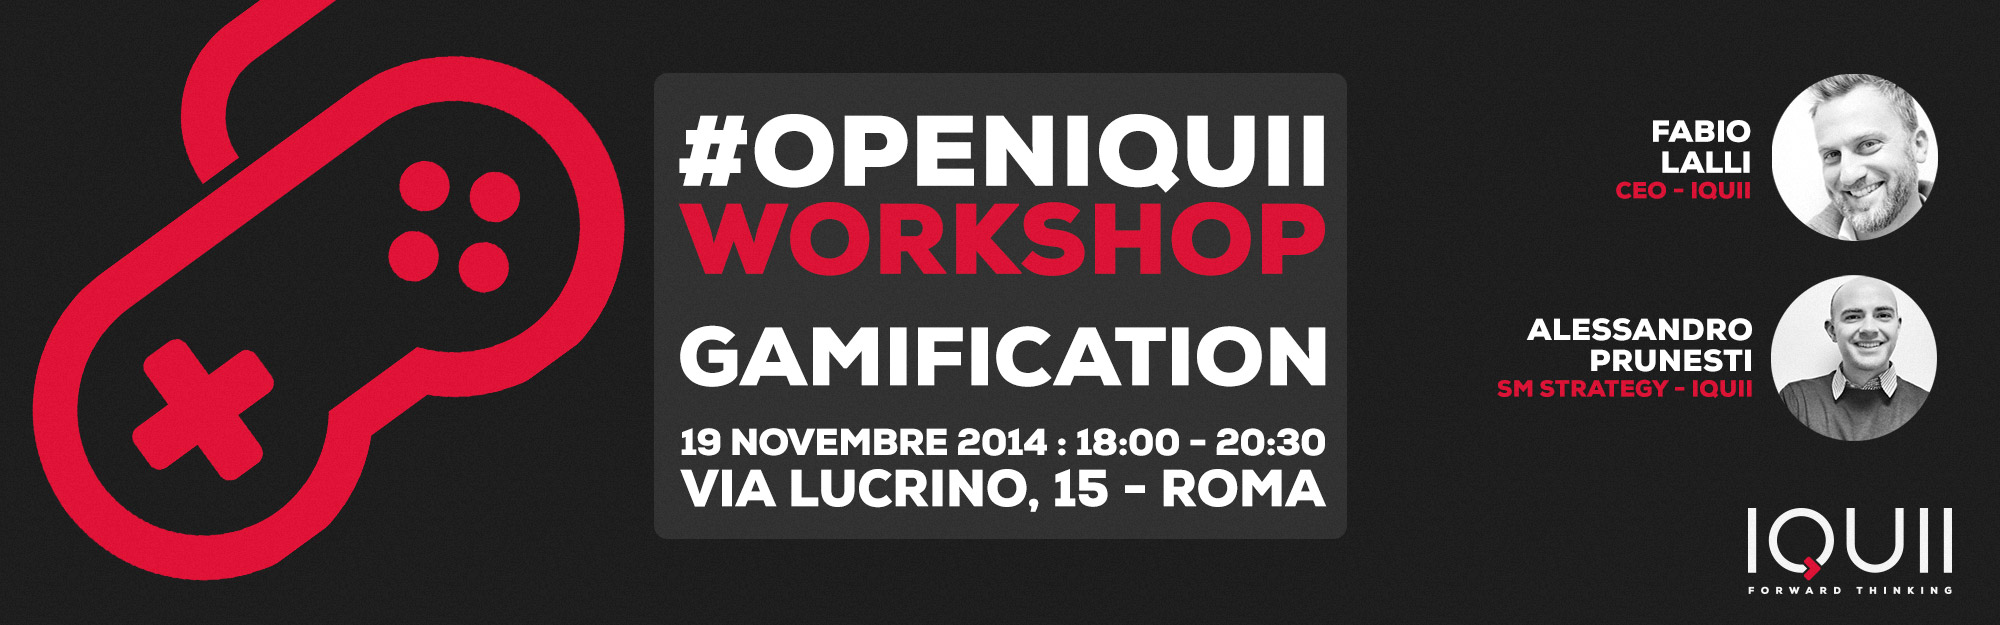 #openIQUII – Workshop Gamification & Loyalty